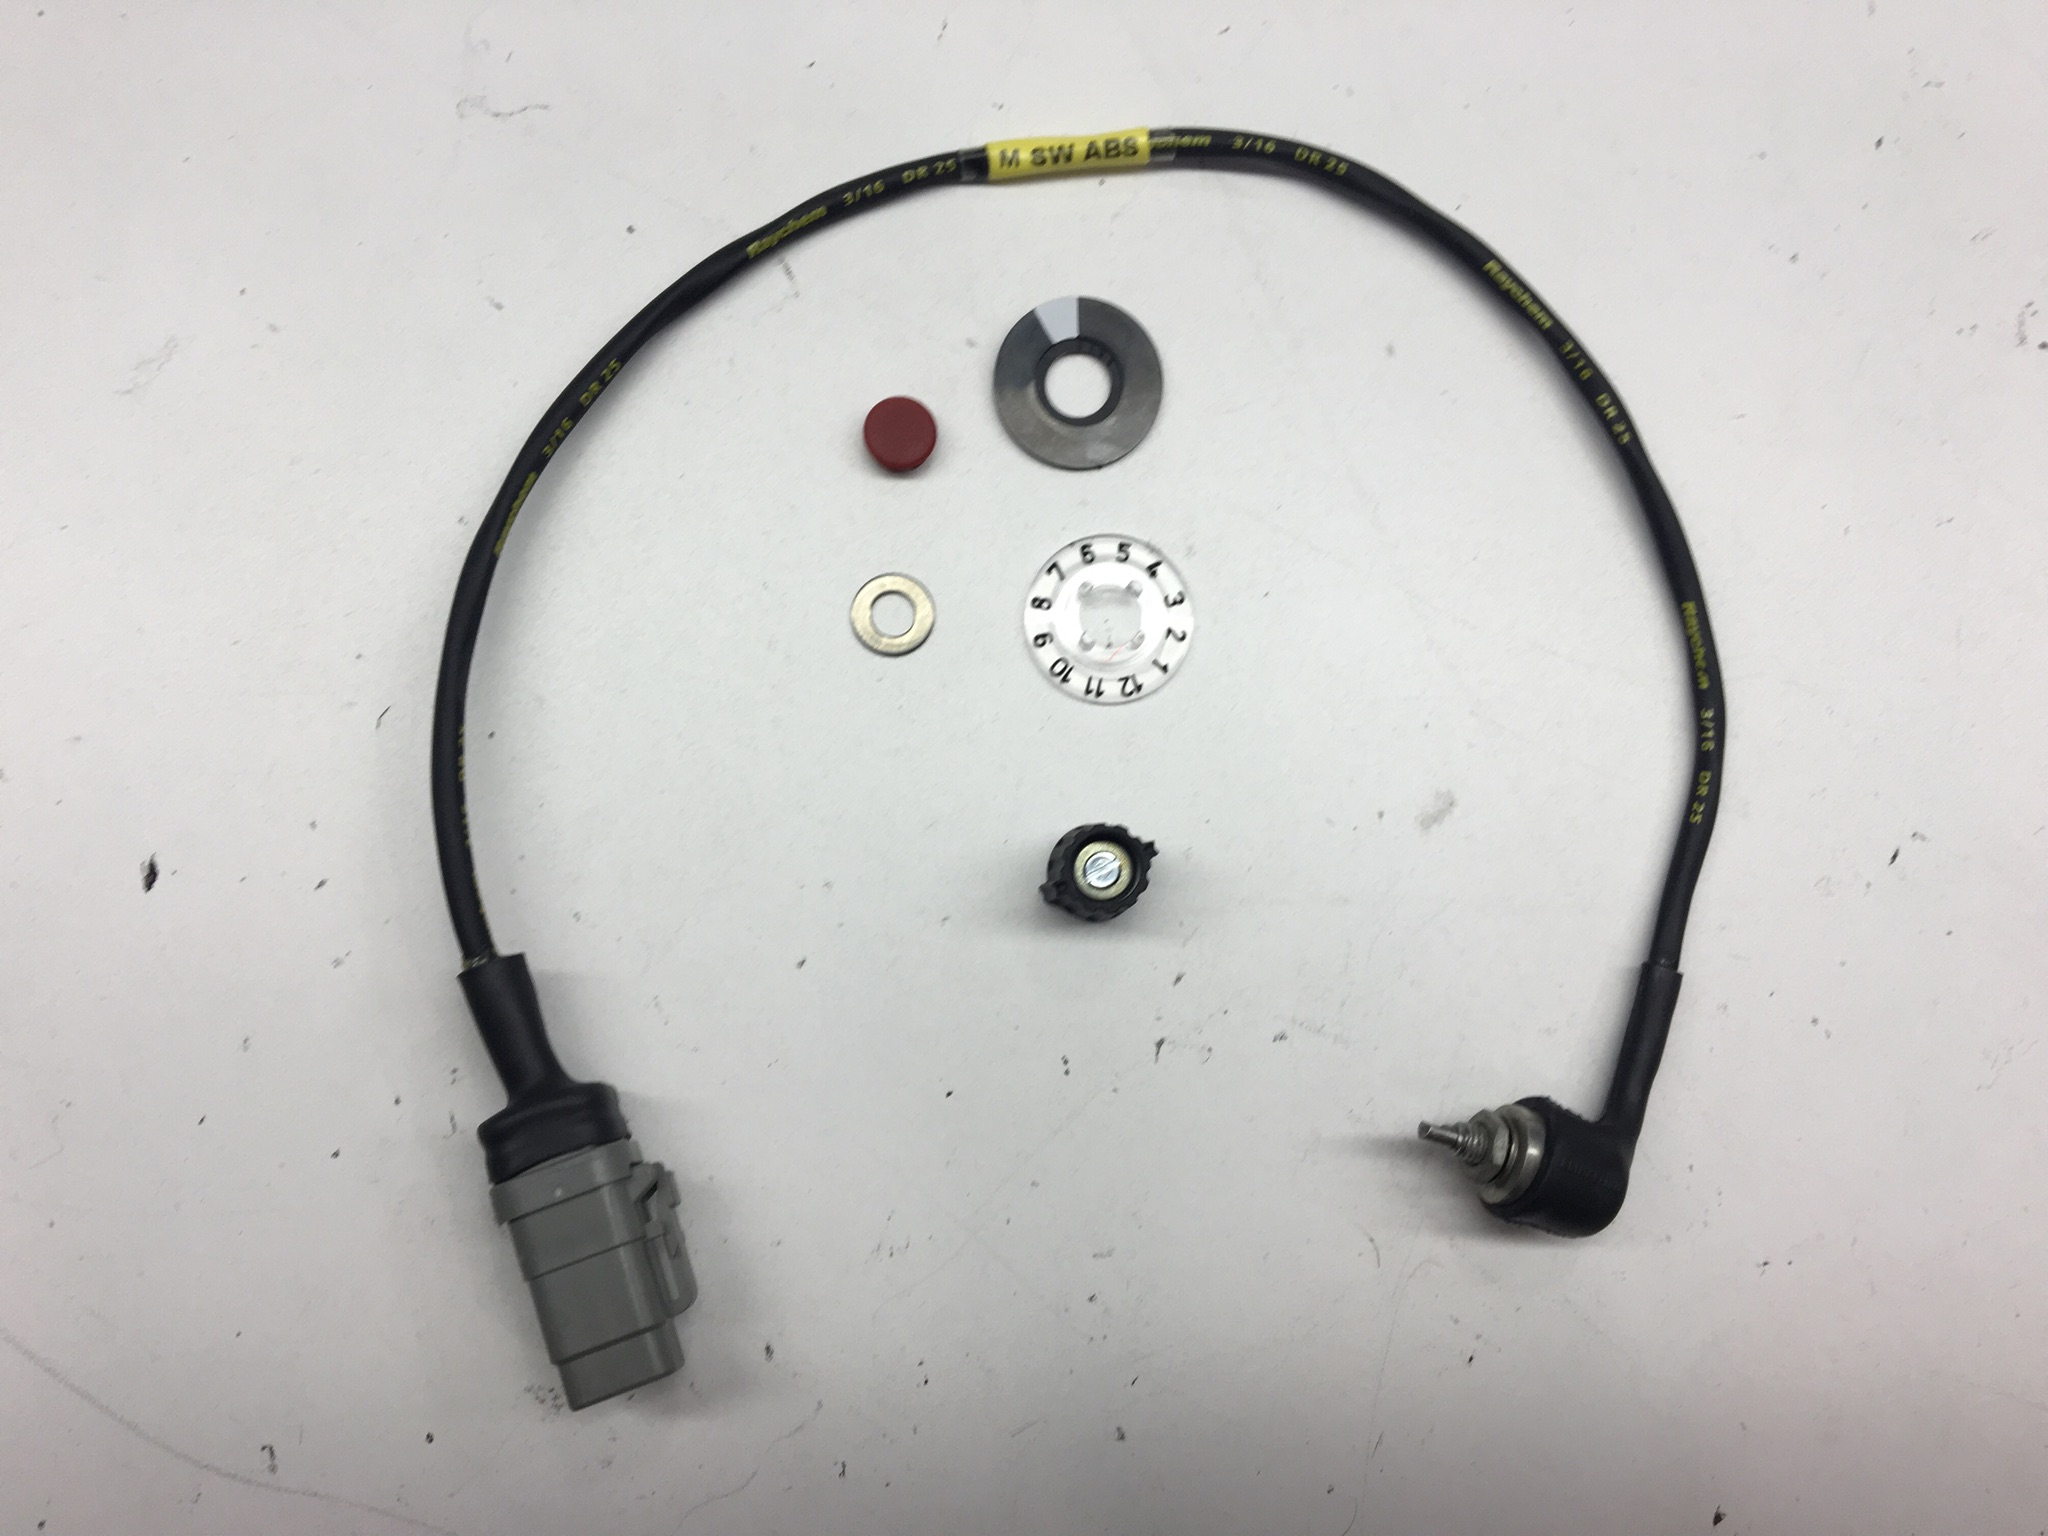 MINIATURE 4 POSITION SWITCH FOR ABS